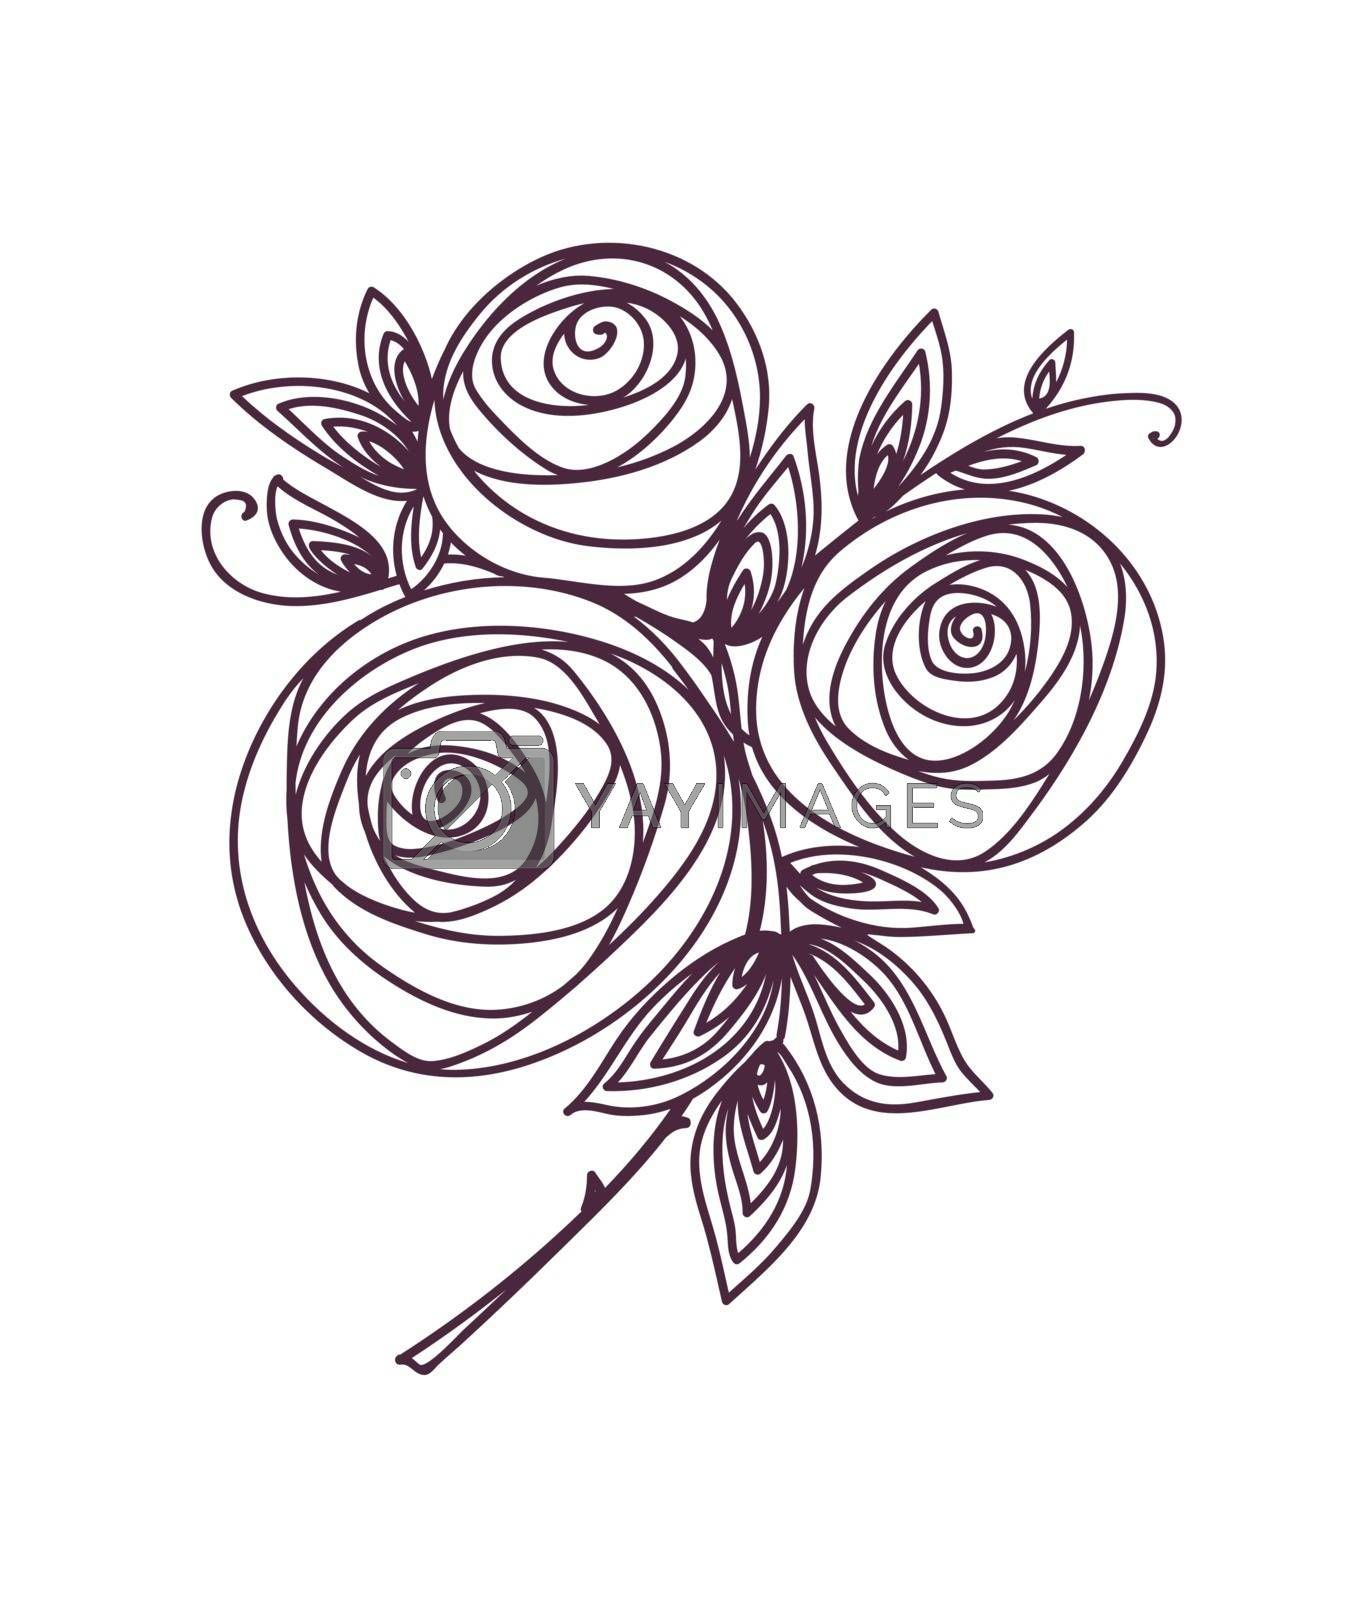 Roses. Stylized flower bouquet hand drawing. Outline icon symbol. Present for wedding, birthday invitation card